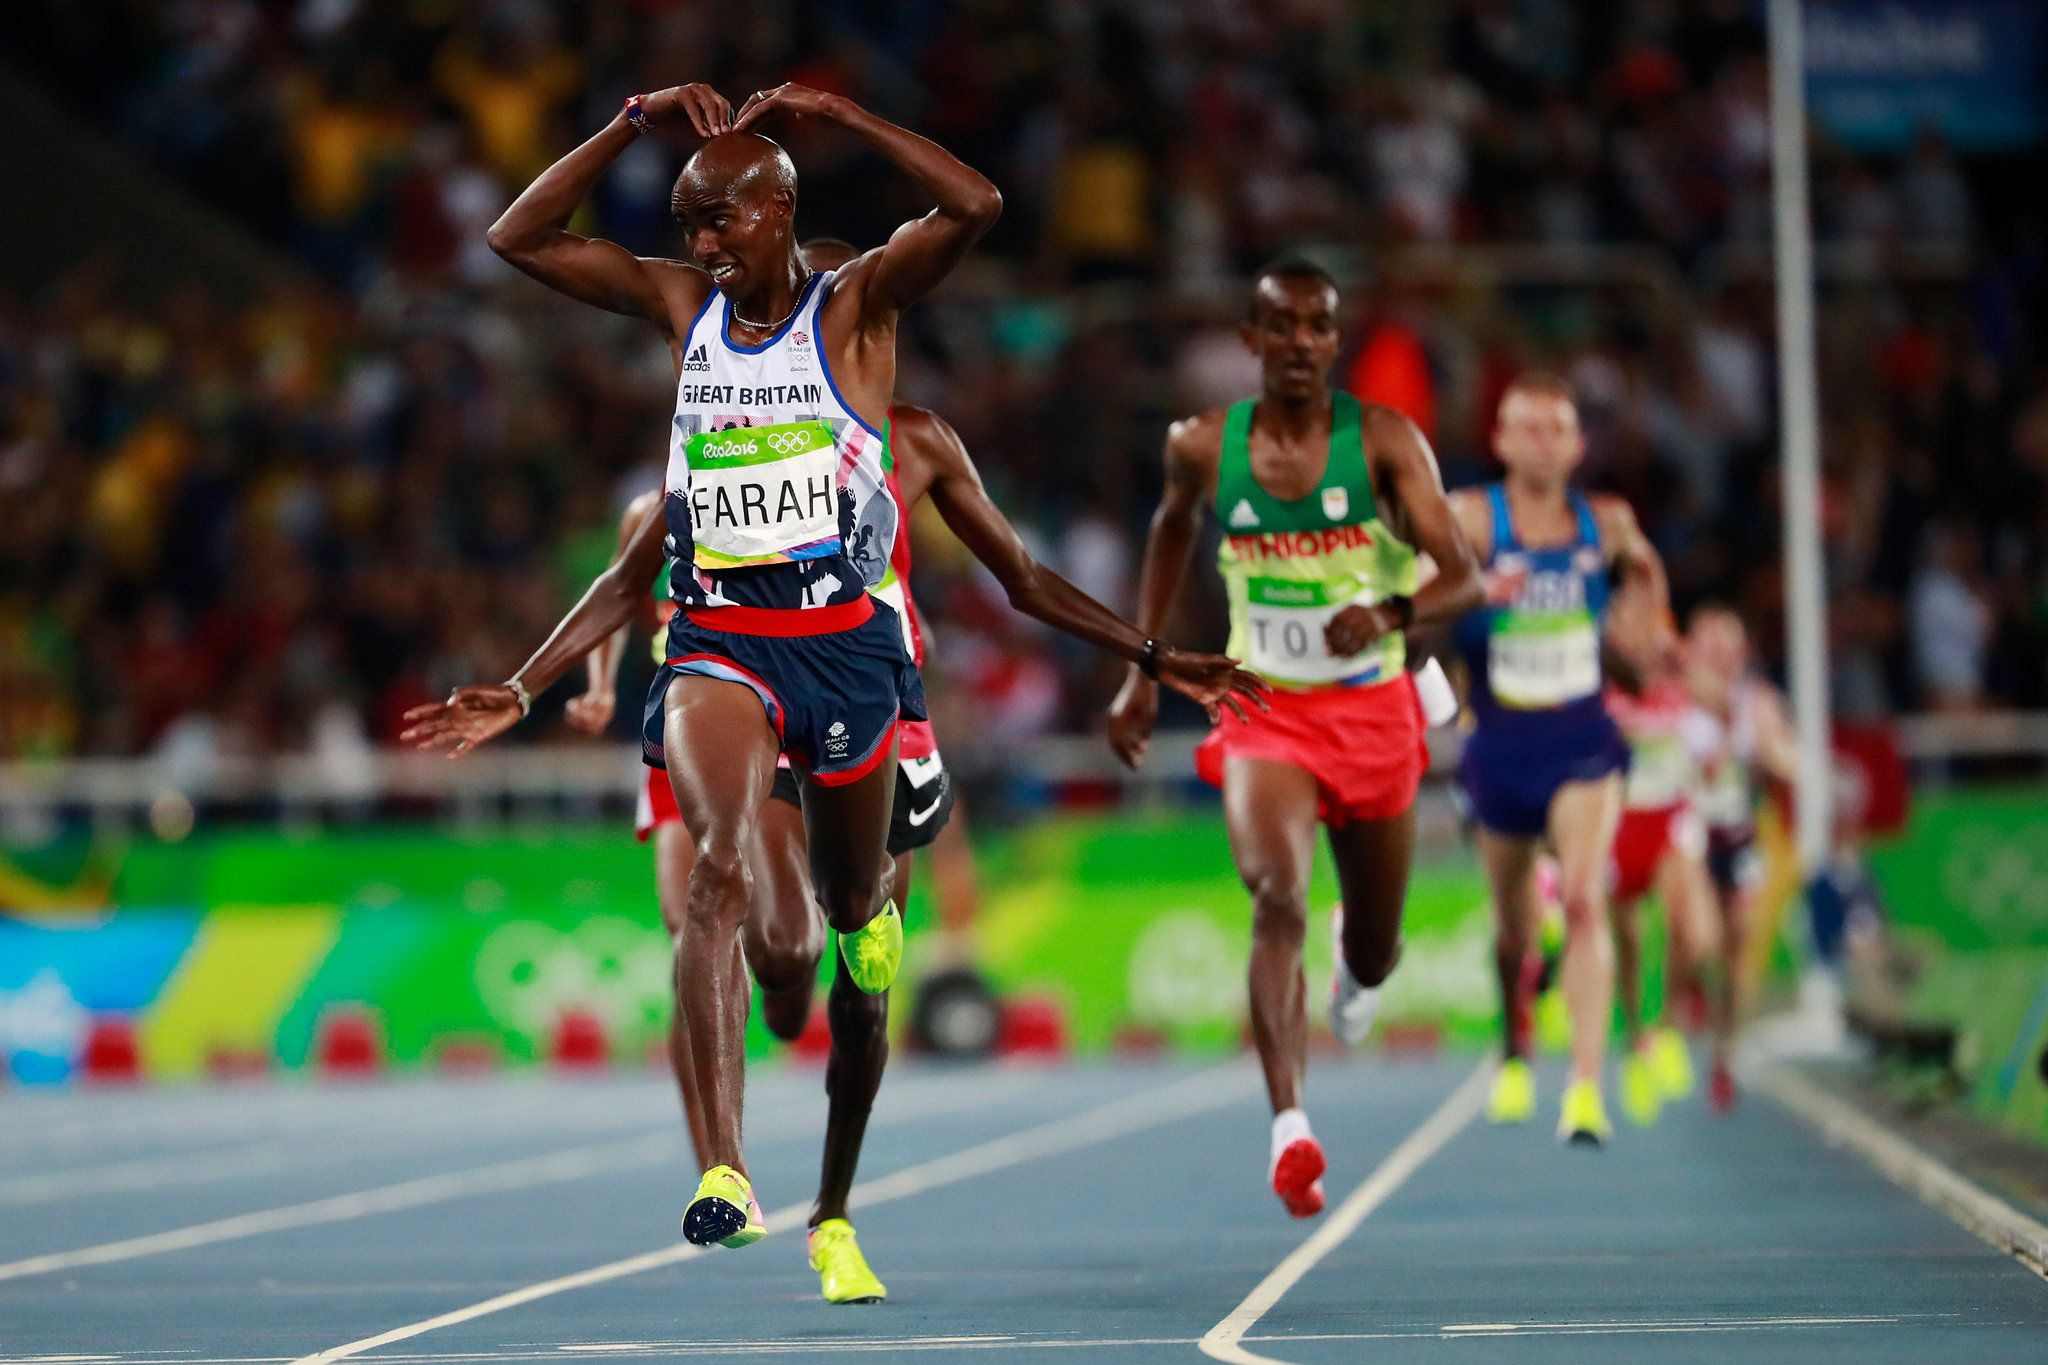 Mo Farah is among track legends like Emil Zatopek of Czechoslovakia and Kenenisa Bekele of Ethiopia as men who have won the 5,000 and 10,000 meters at the same Olympics.